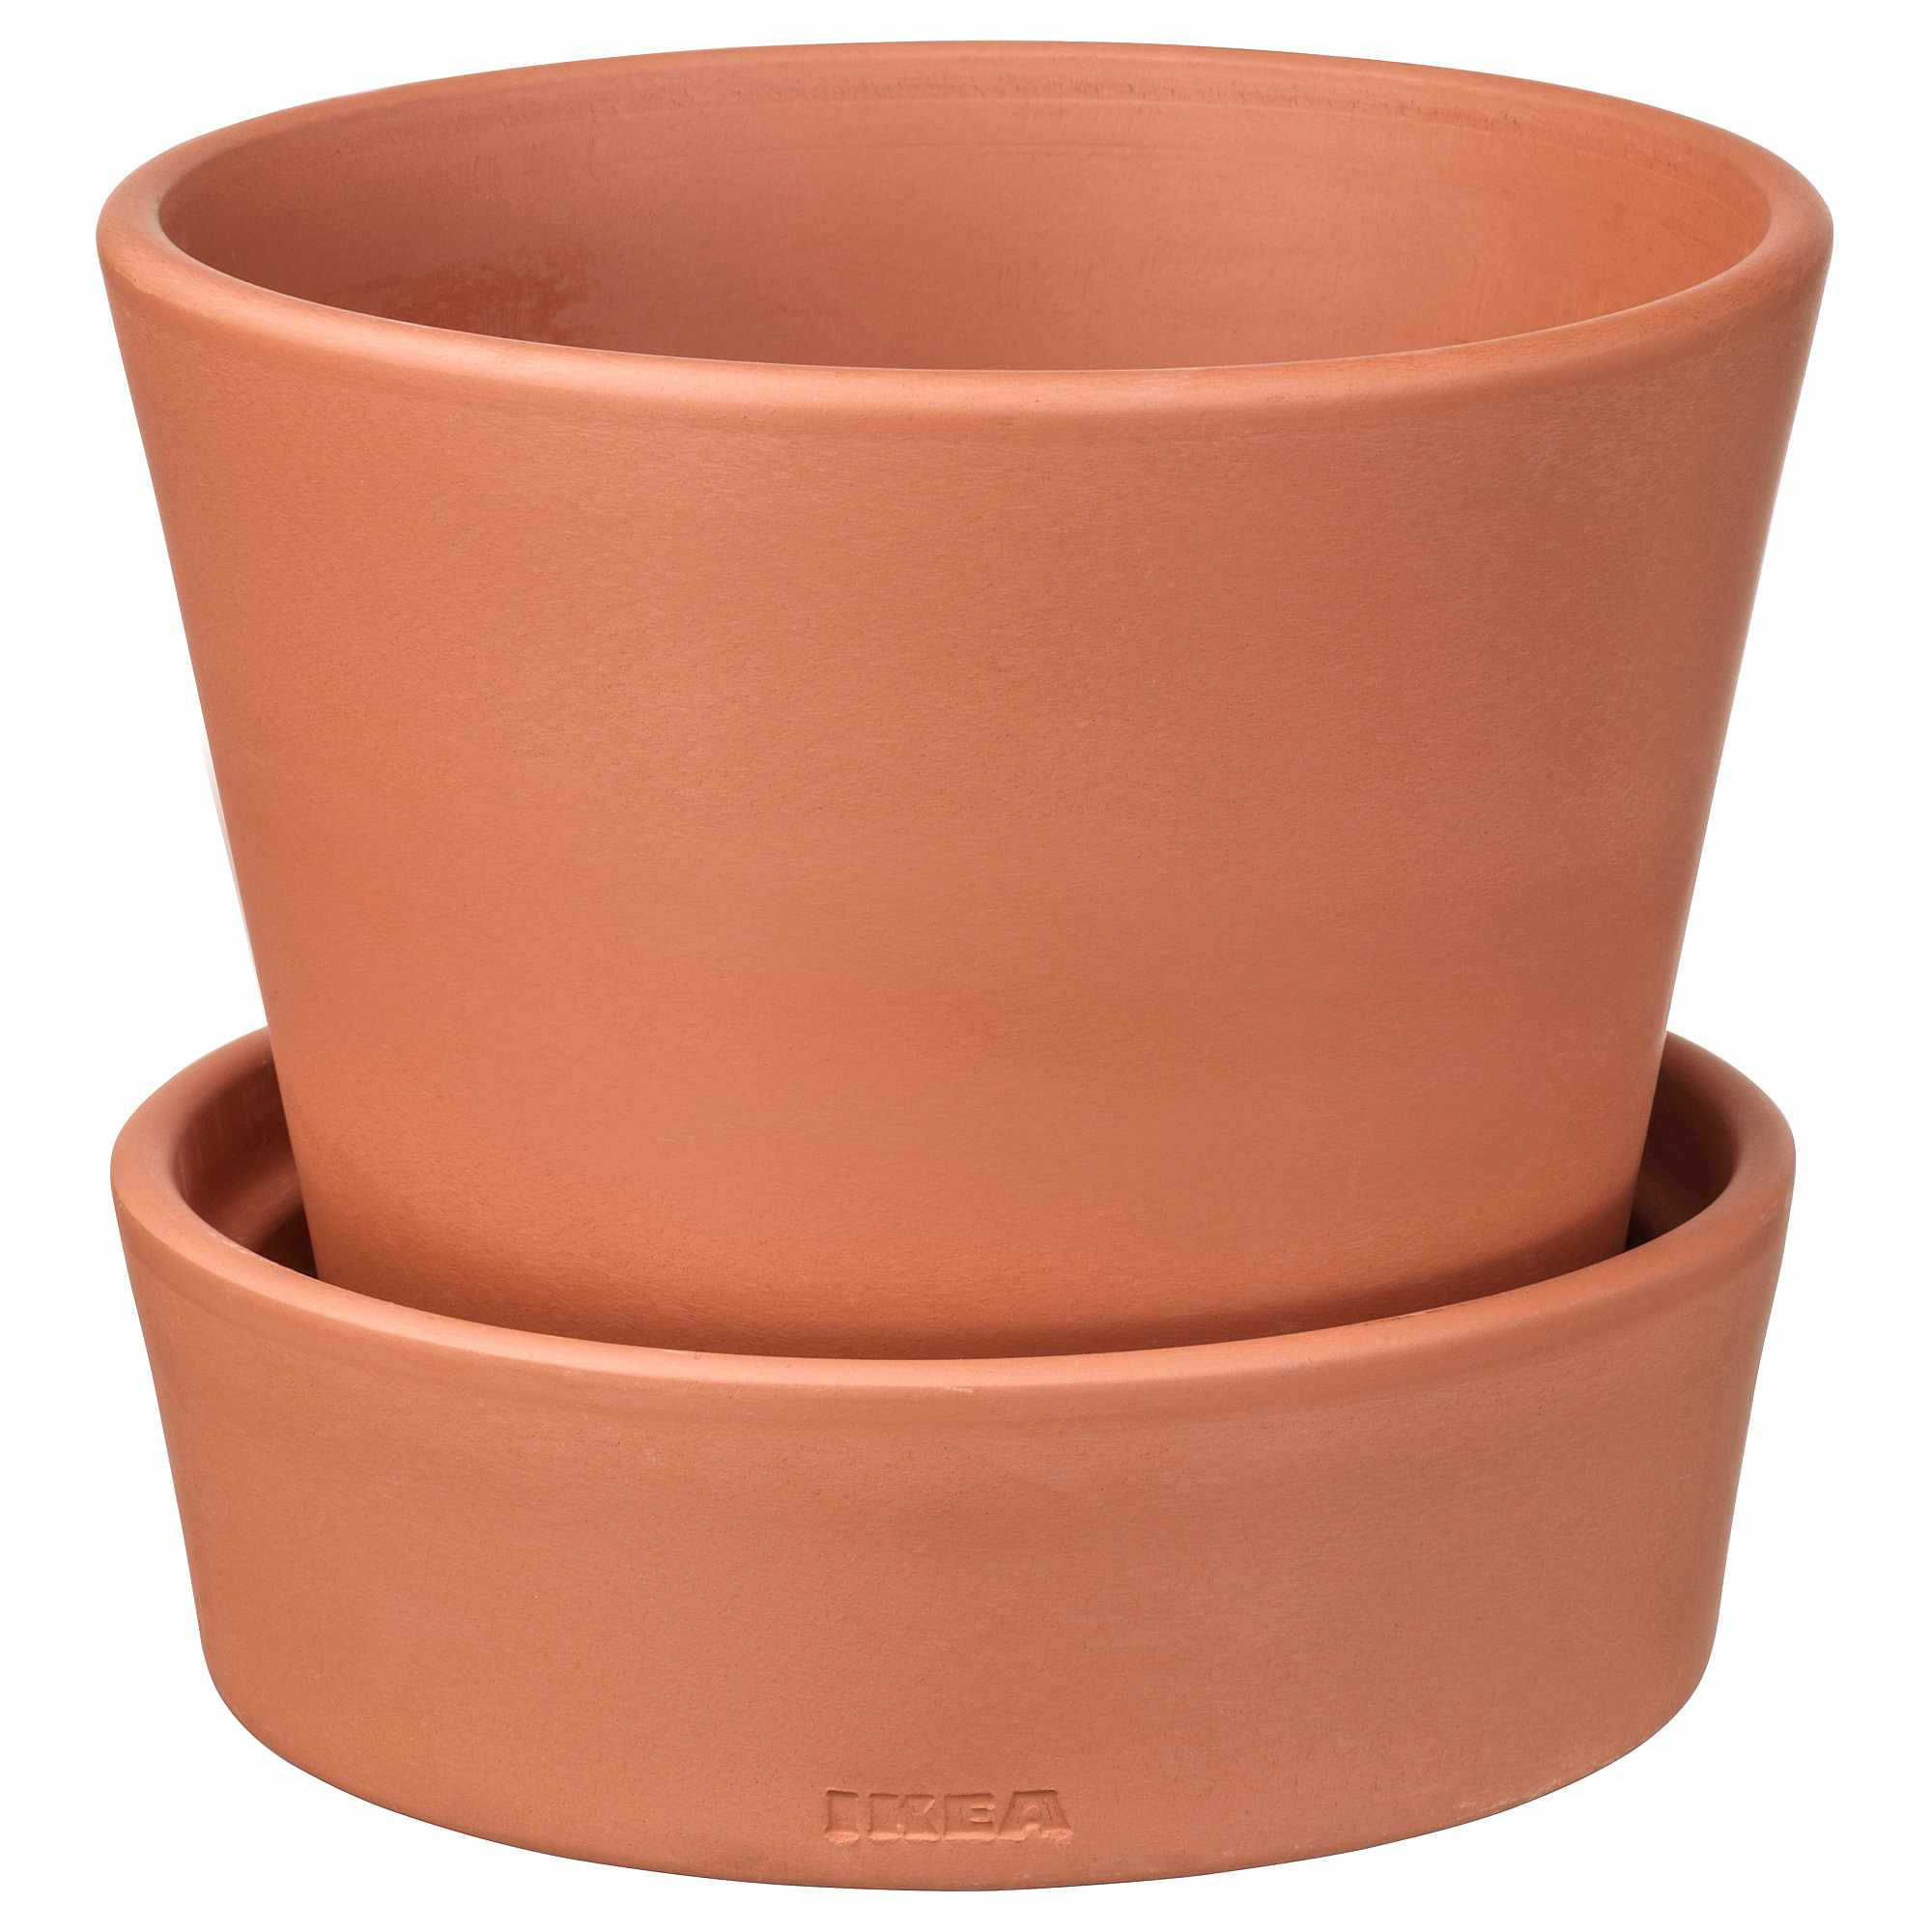 INGEFÄRA Plant Pot with Saucer product.